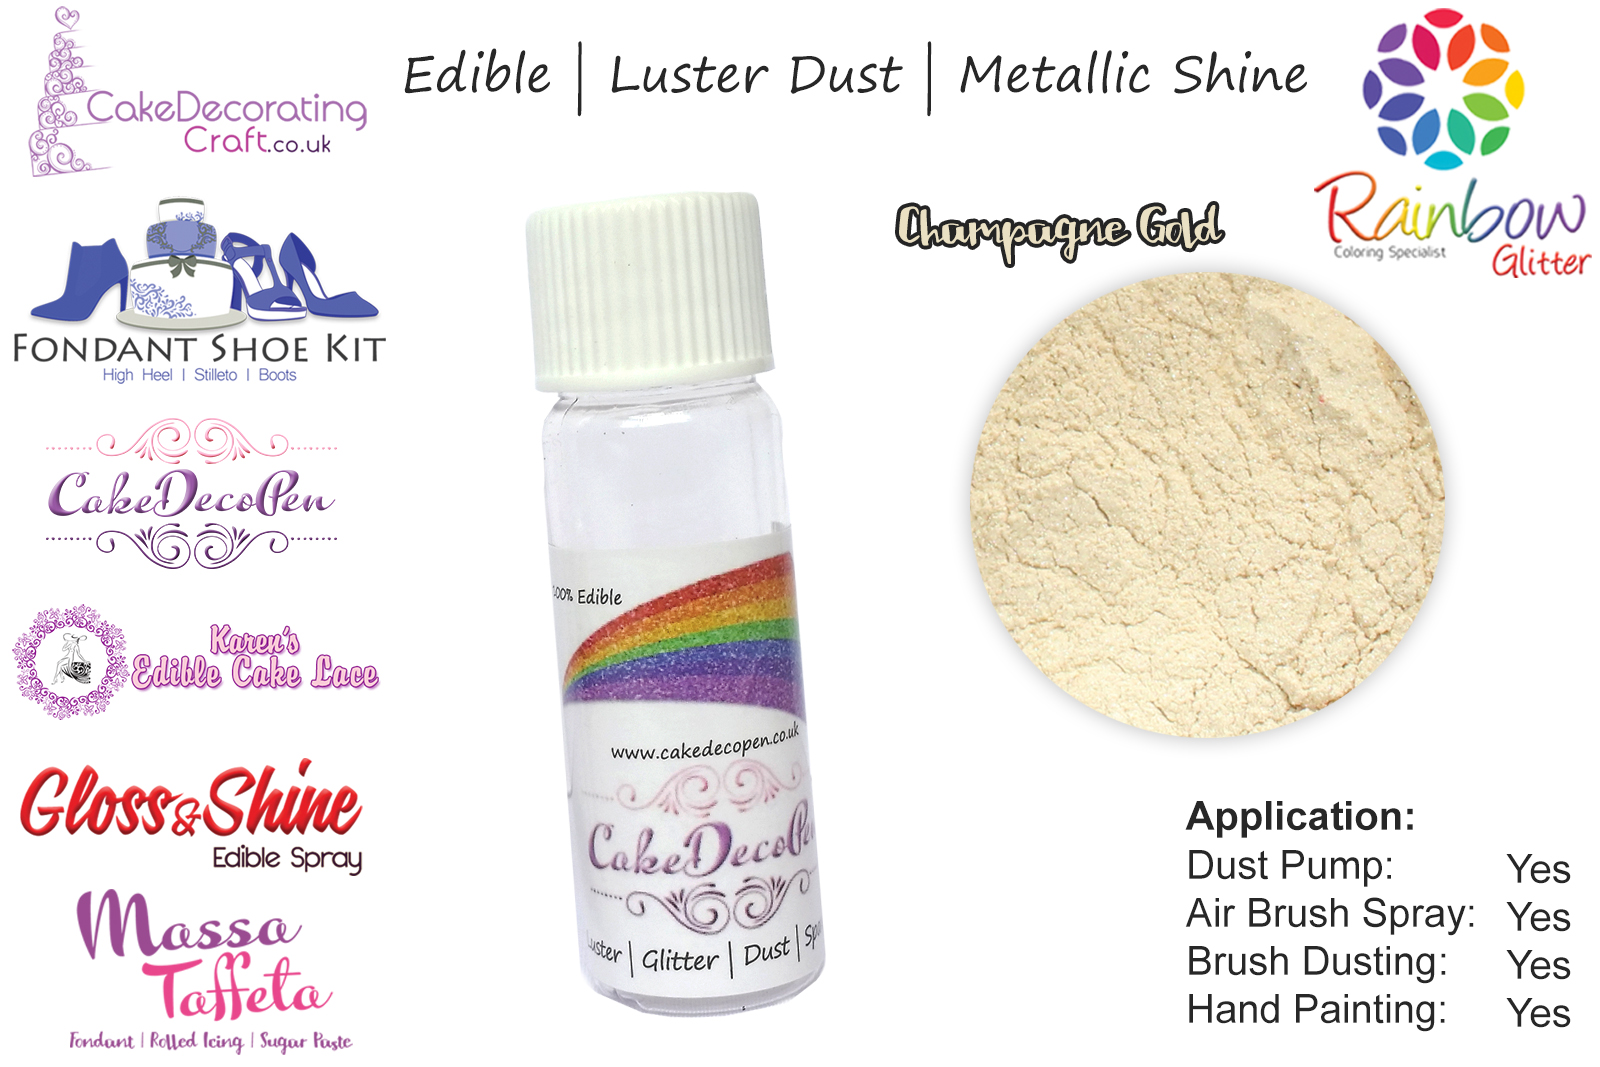 Champagne Gold Pearled Luster Shimmer Gloss Edible